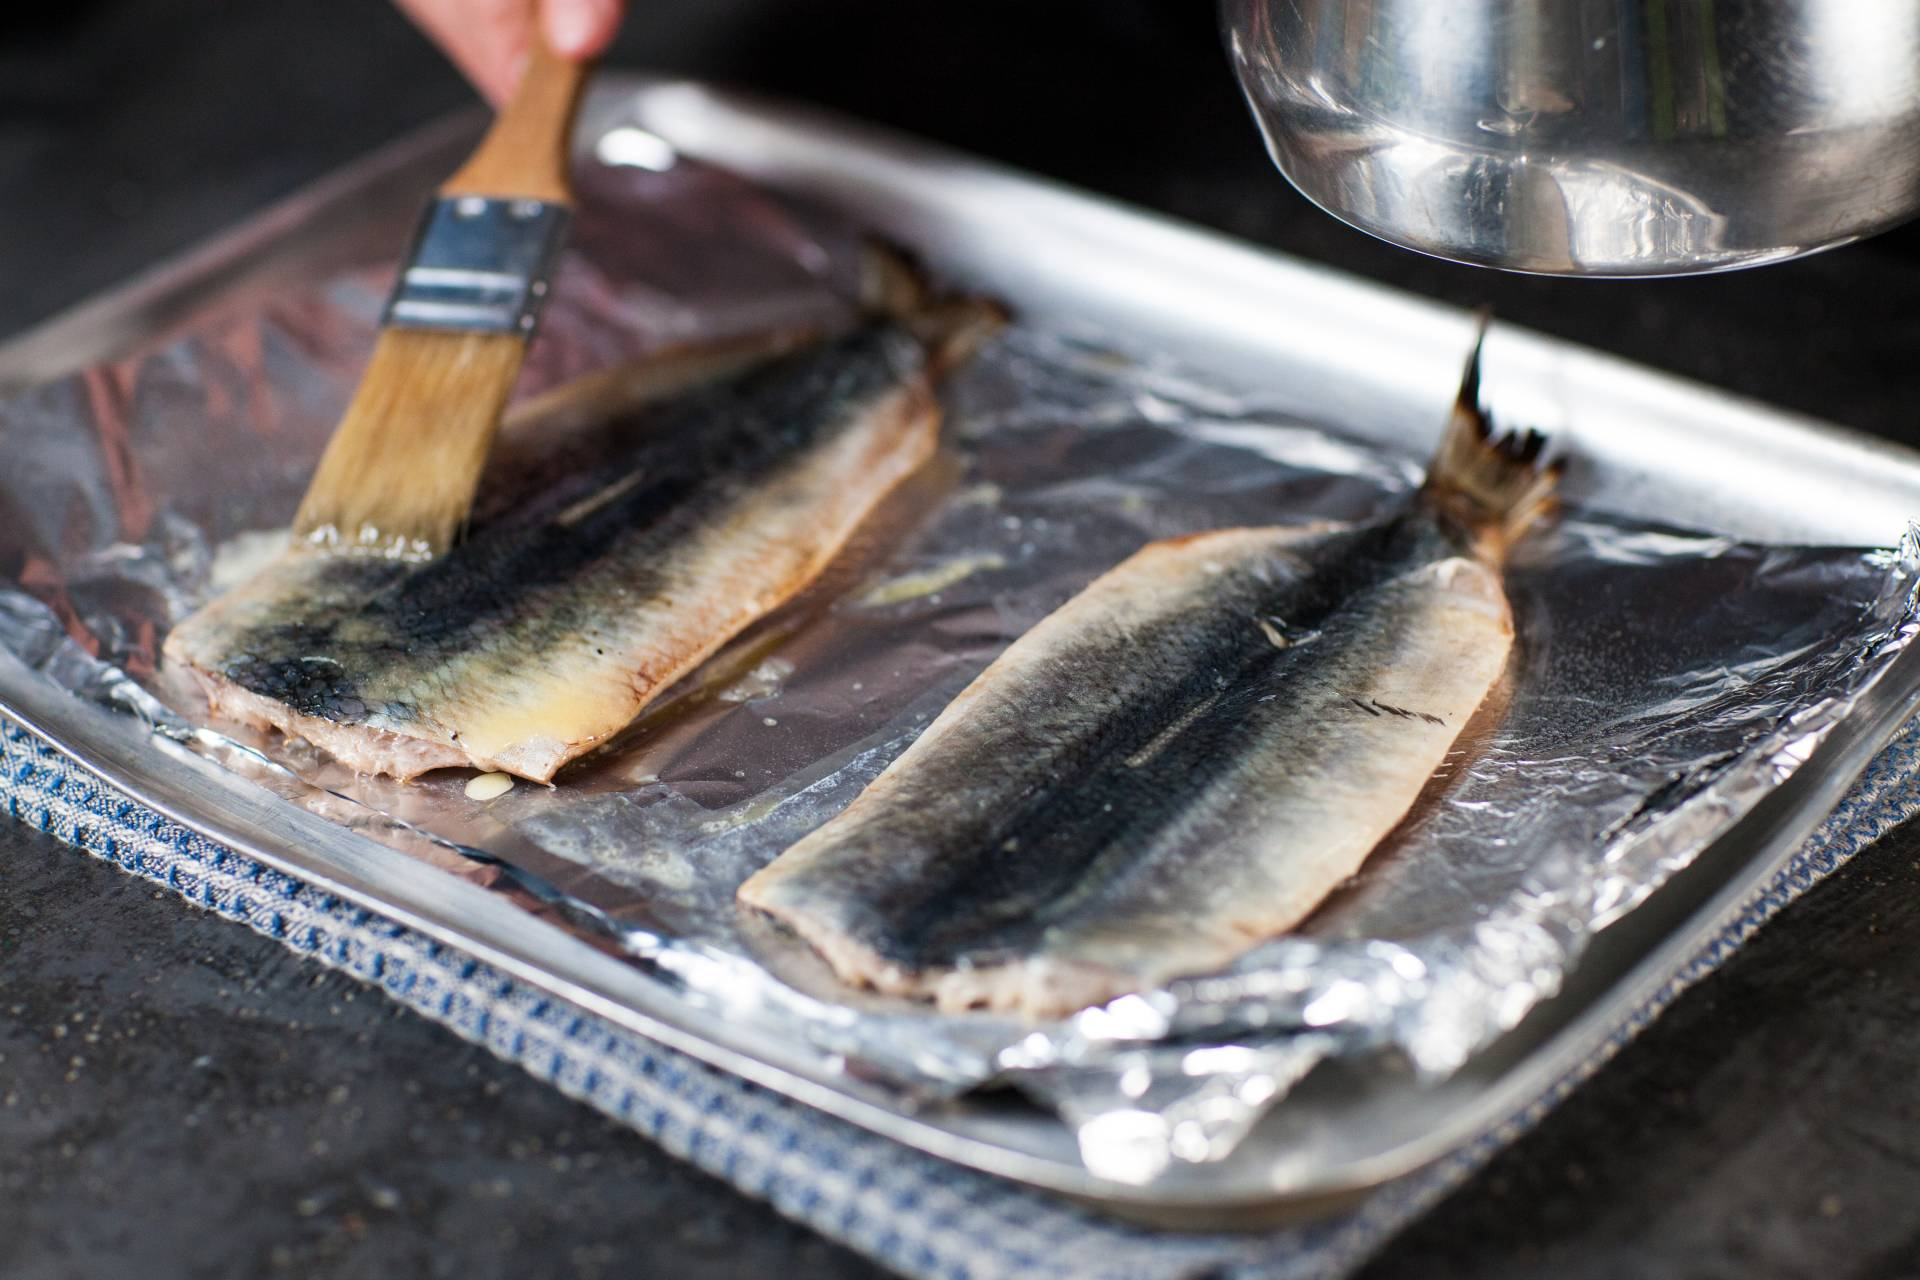 Oil being brushed on herring on a tray